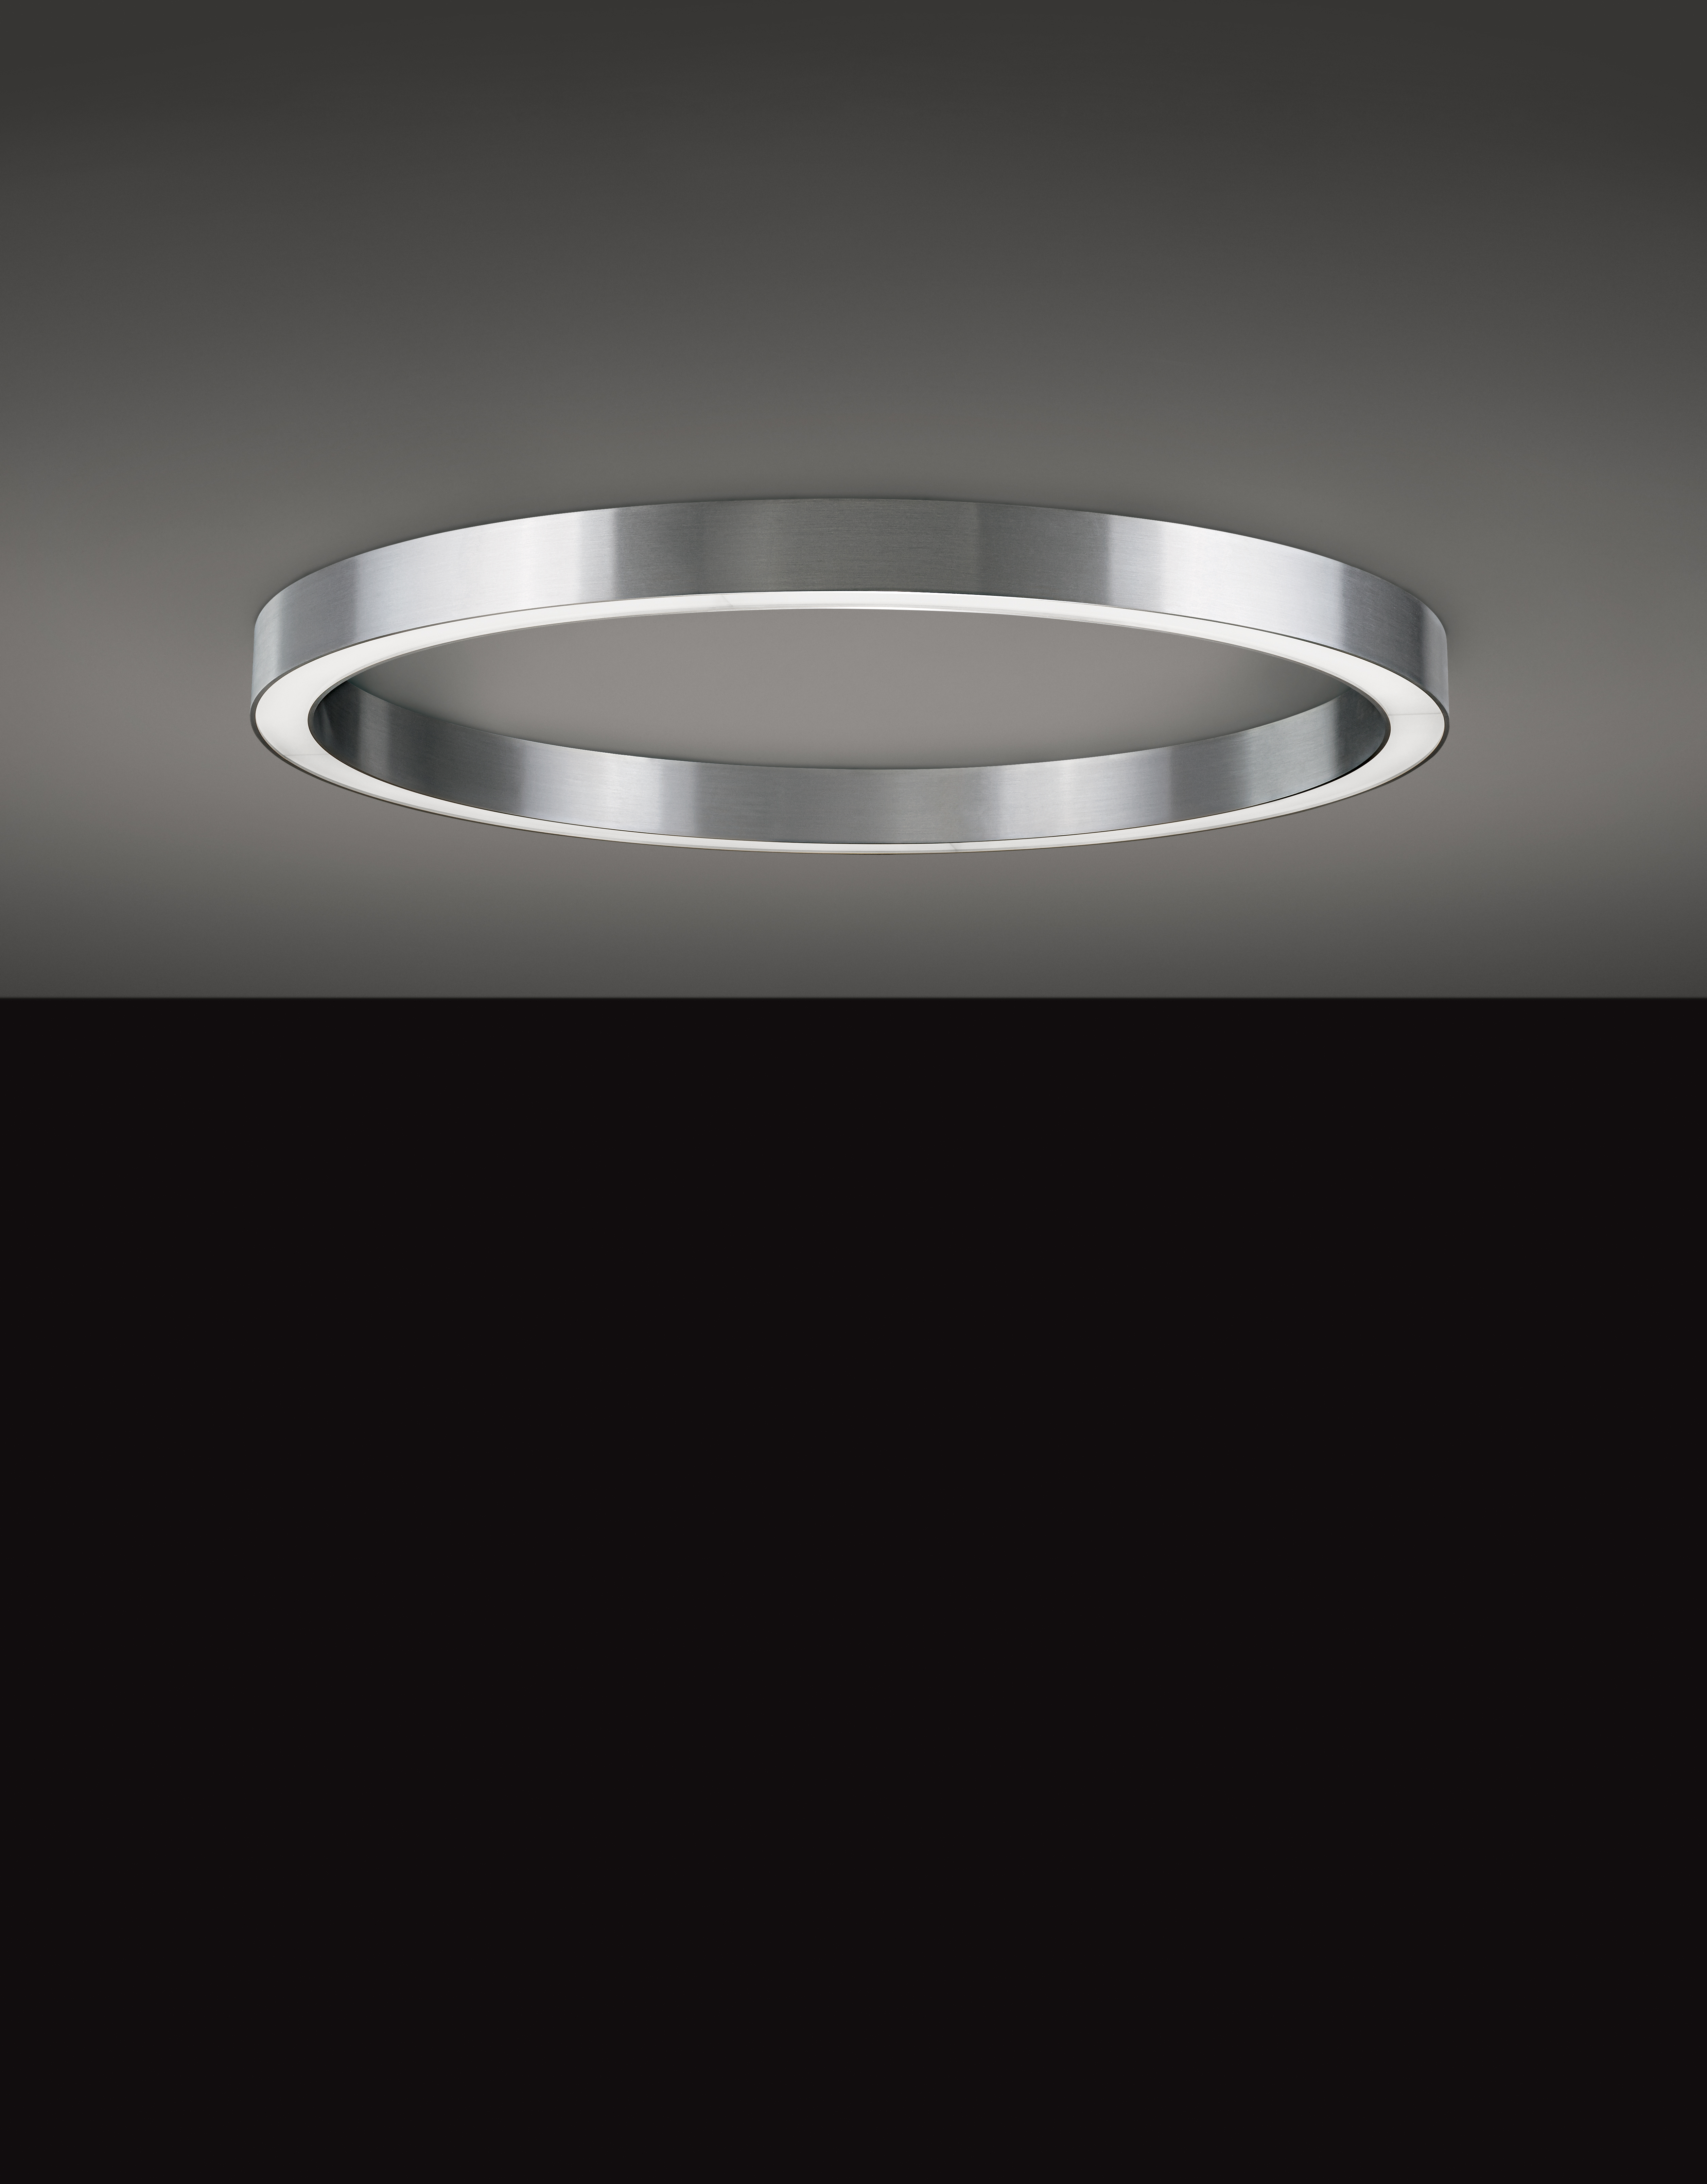 Solo Ceiling Ocl Architectural Lighting